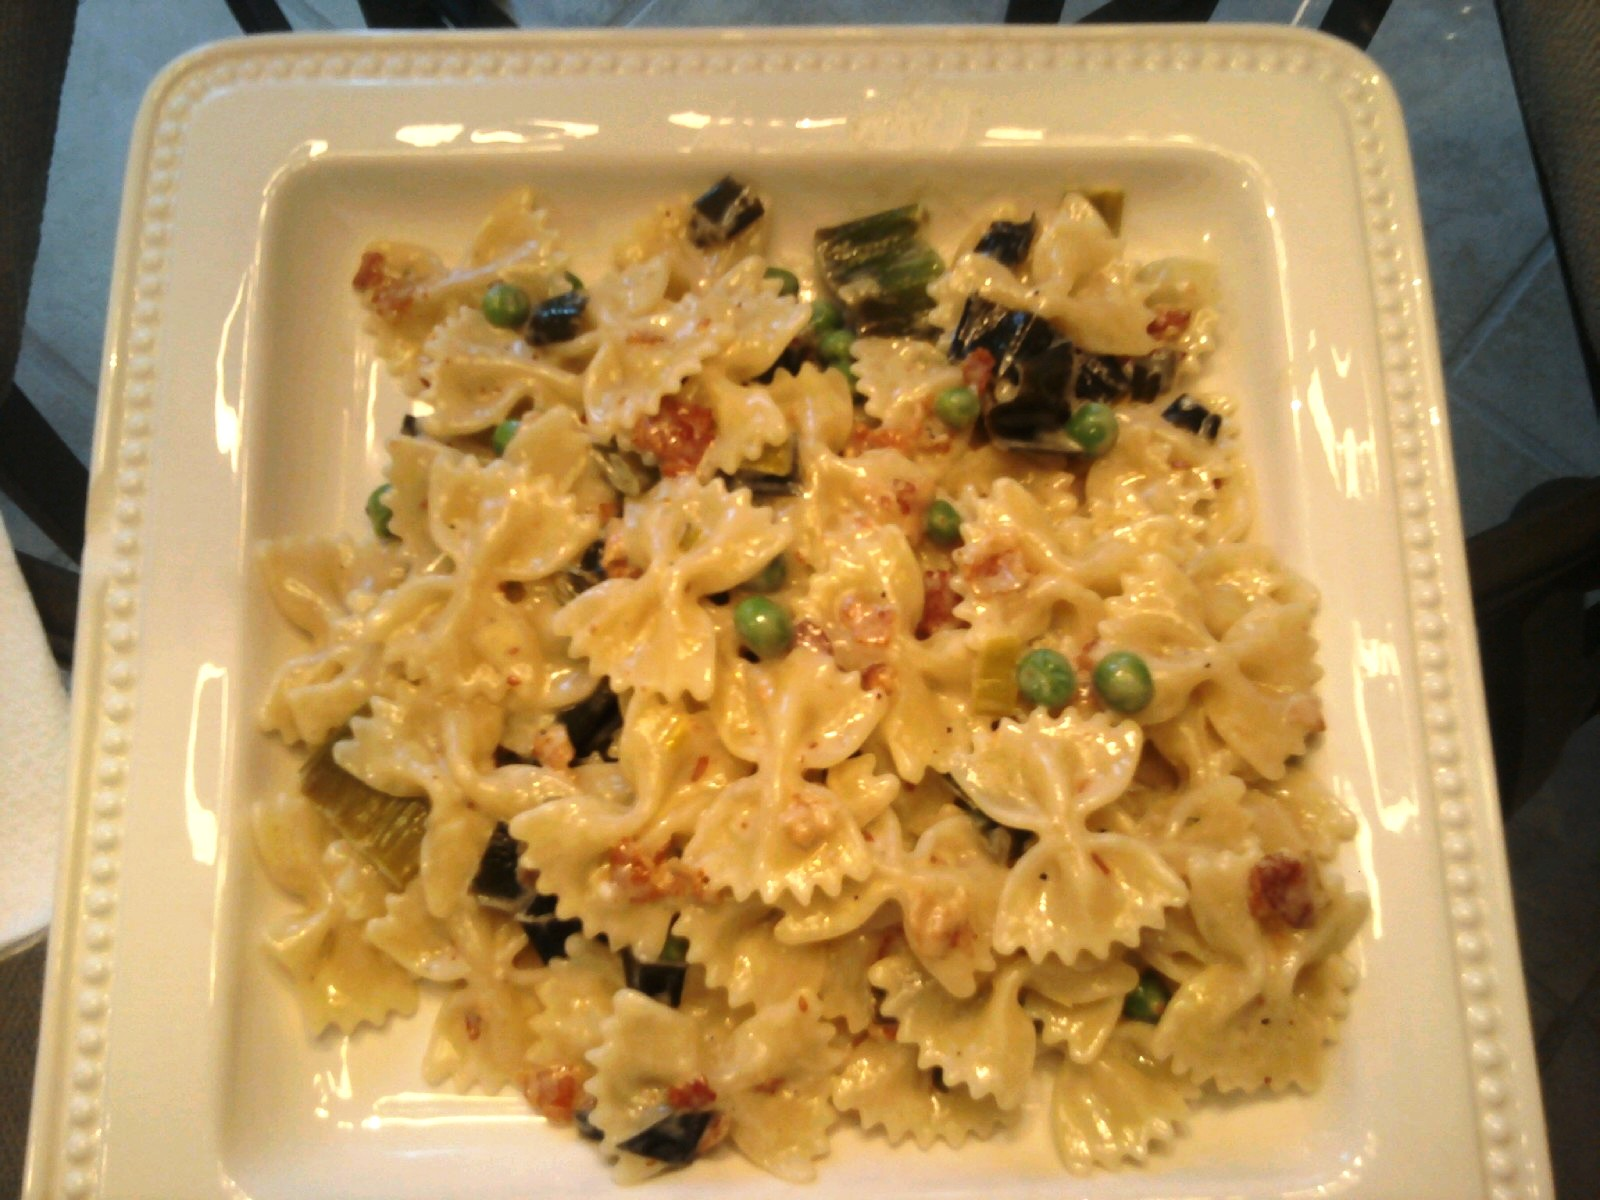 Cancel Your Reservation: Creamy Pasta With Pancetta, Leeks ...